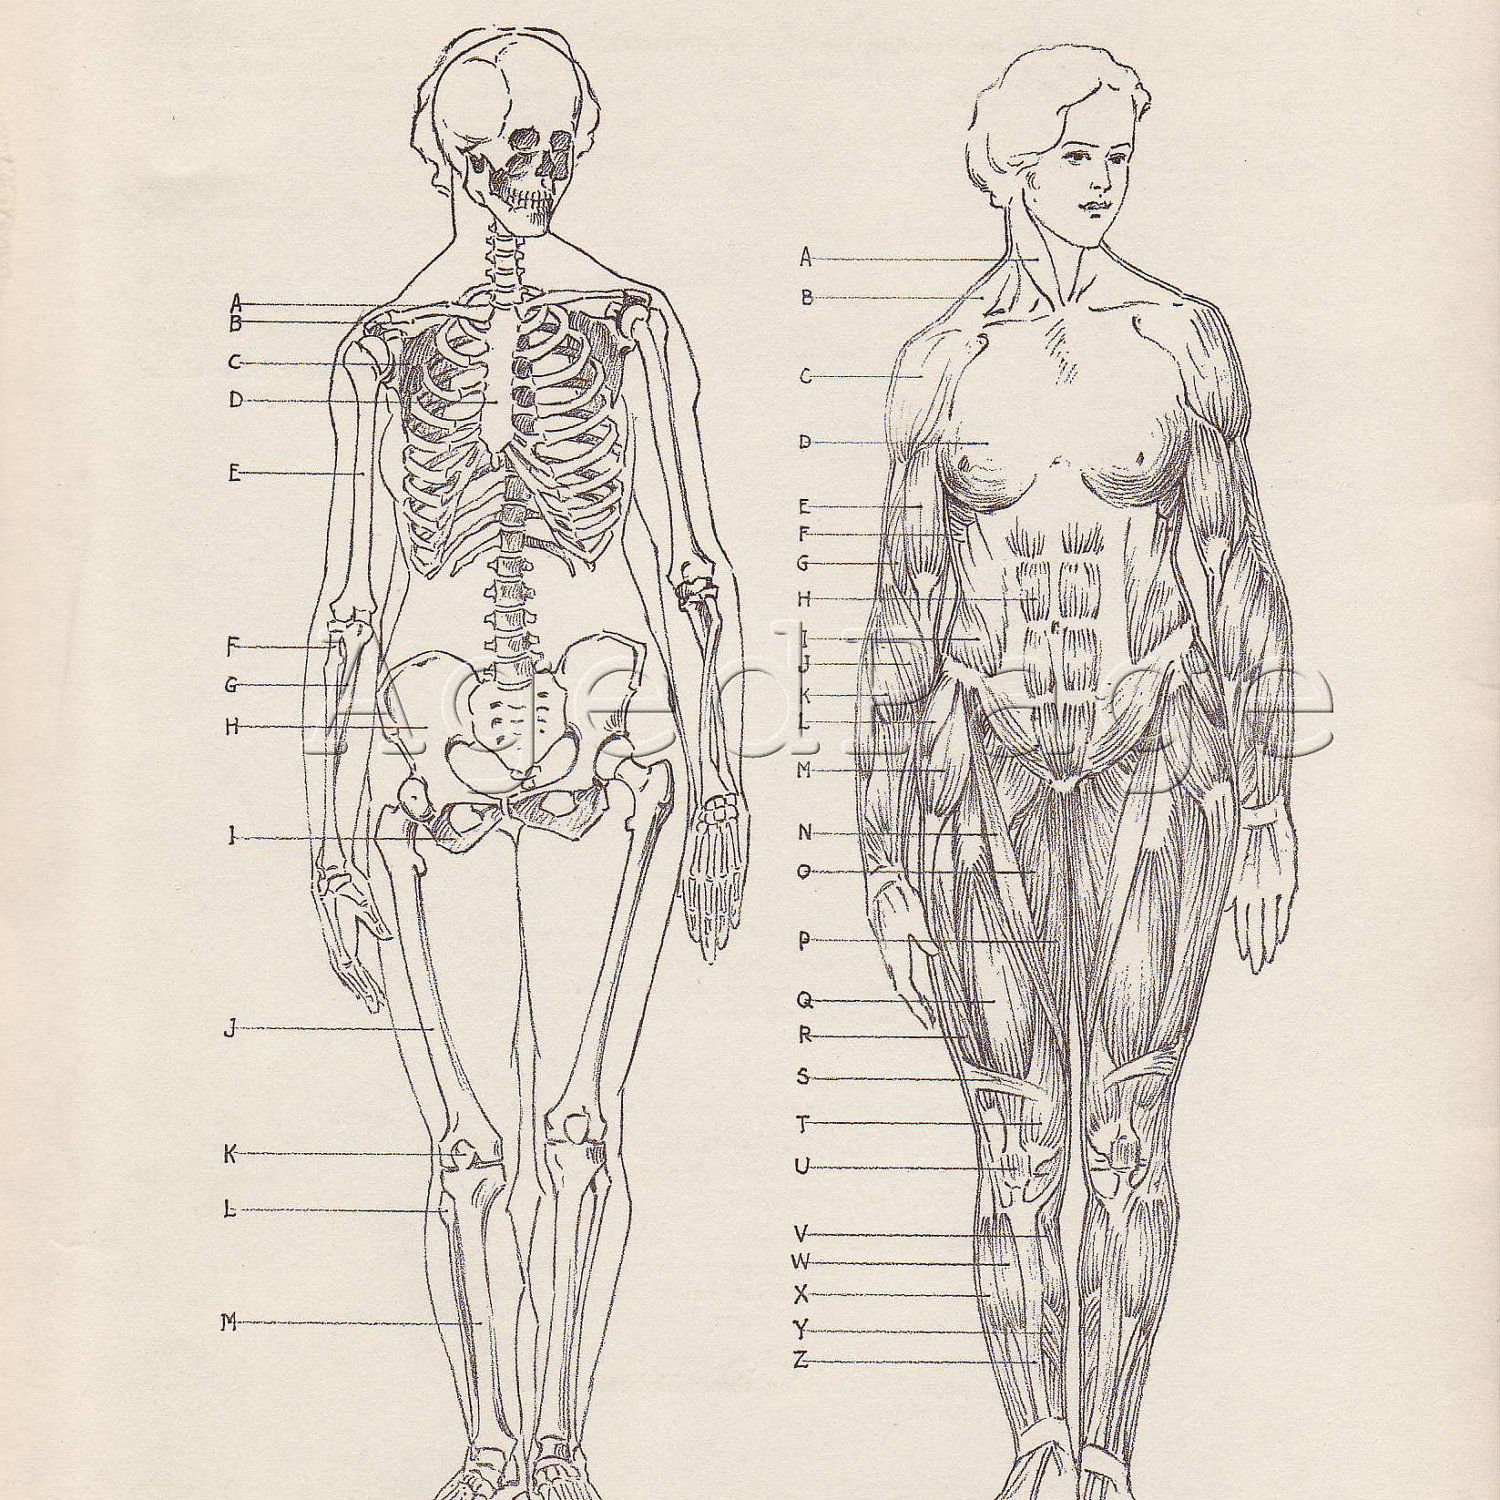 Vintage Anatomy Print Human Anatomy Chart Book Illustration Bones And Muscles Of The Female Full Figure Human Anatomy Chart Human Anatomy Book Illustration